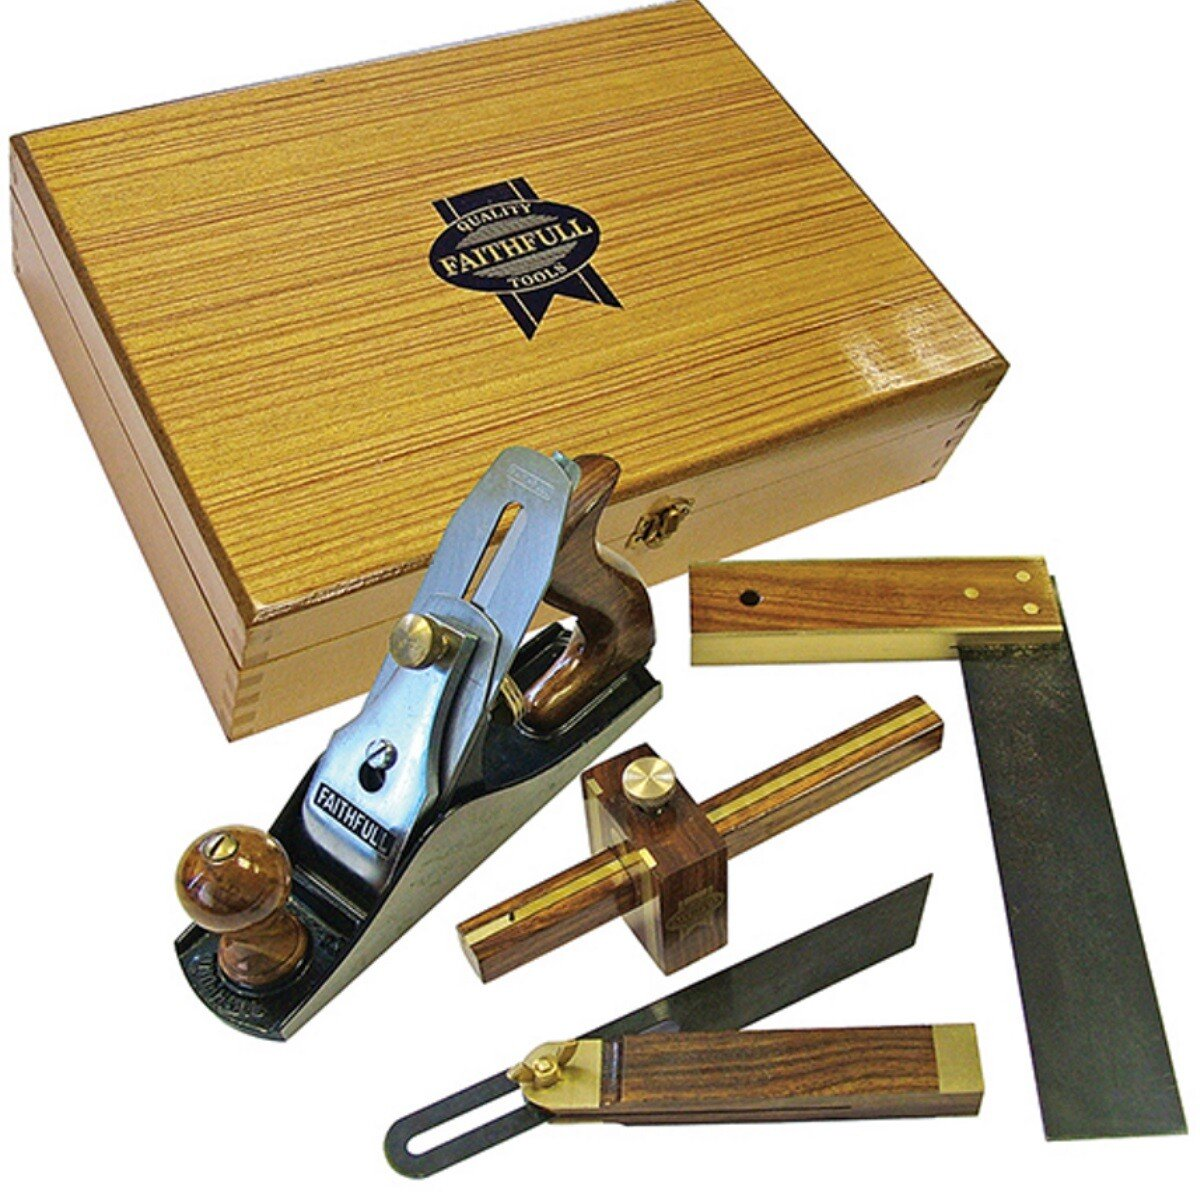 Faithfull FAIPLANEKIT Plane & Woodworking Set 4 Piece